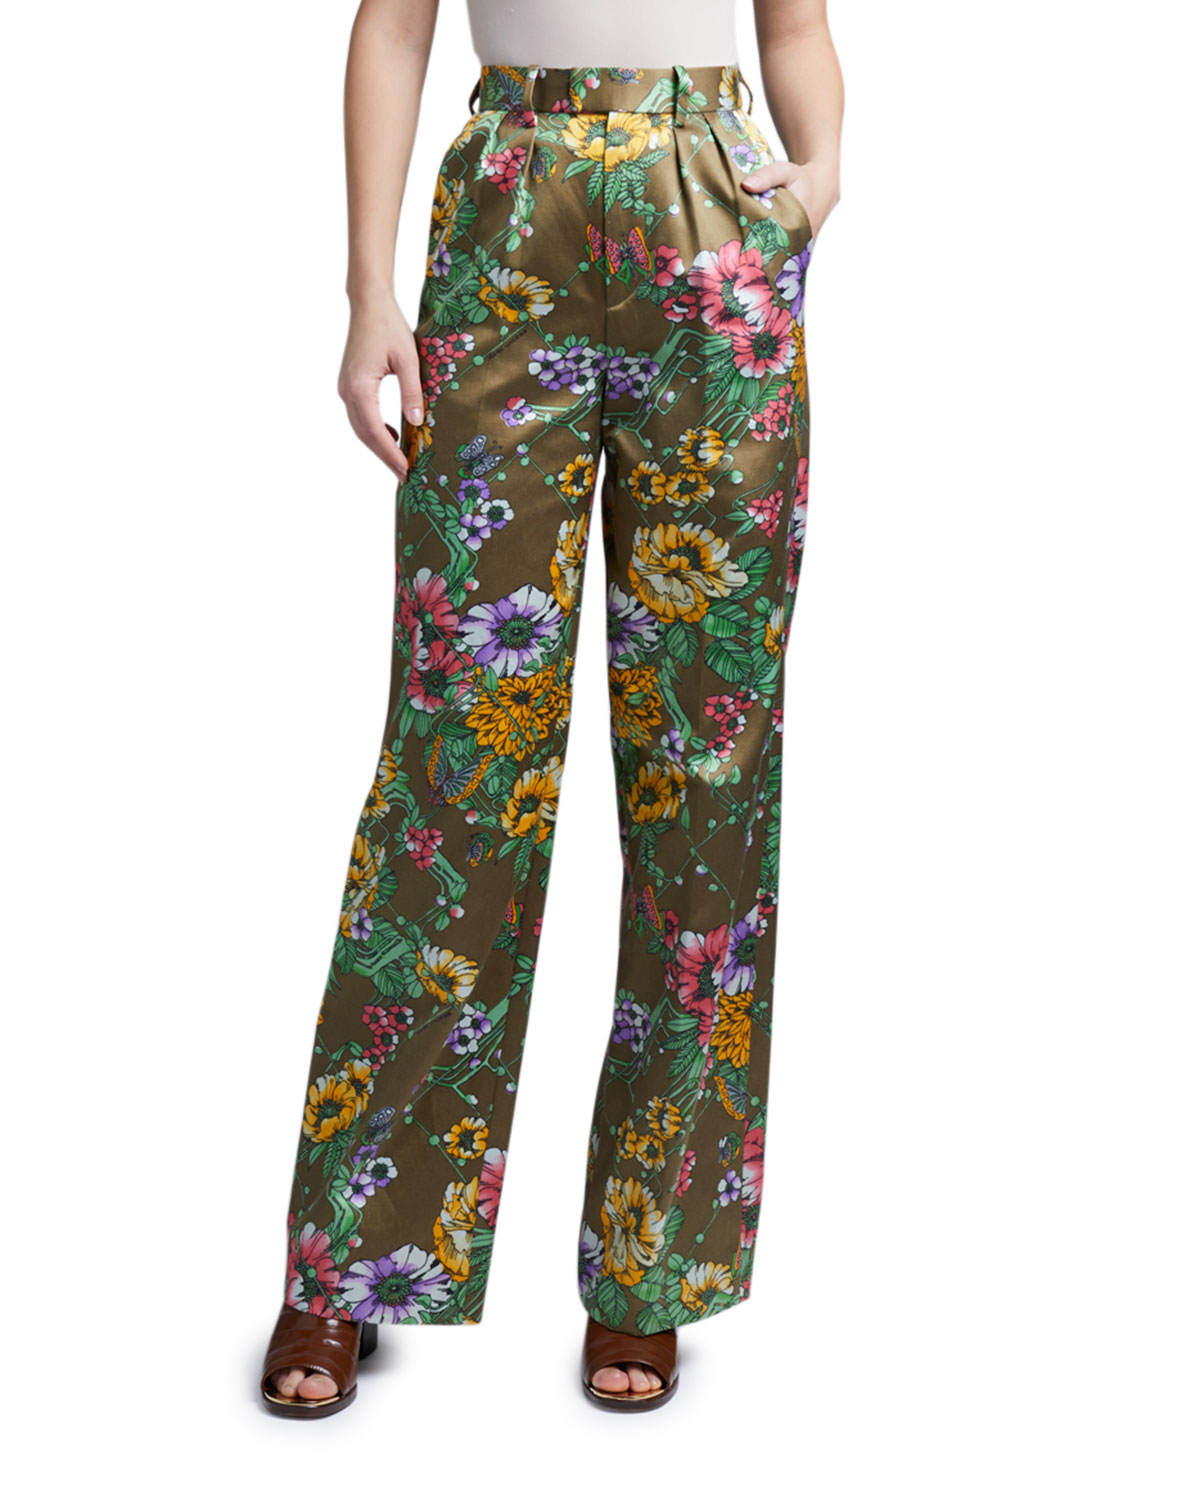 Marc Jacobs (Runway) Floral Satin Pleated Pants